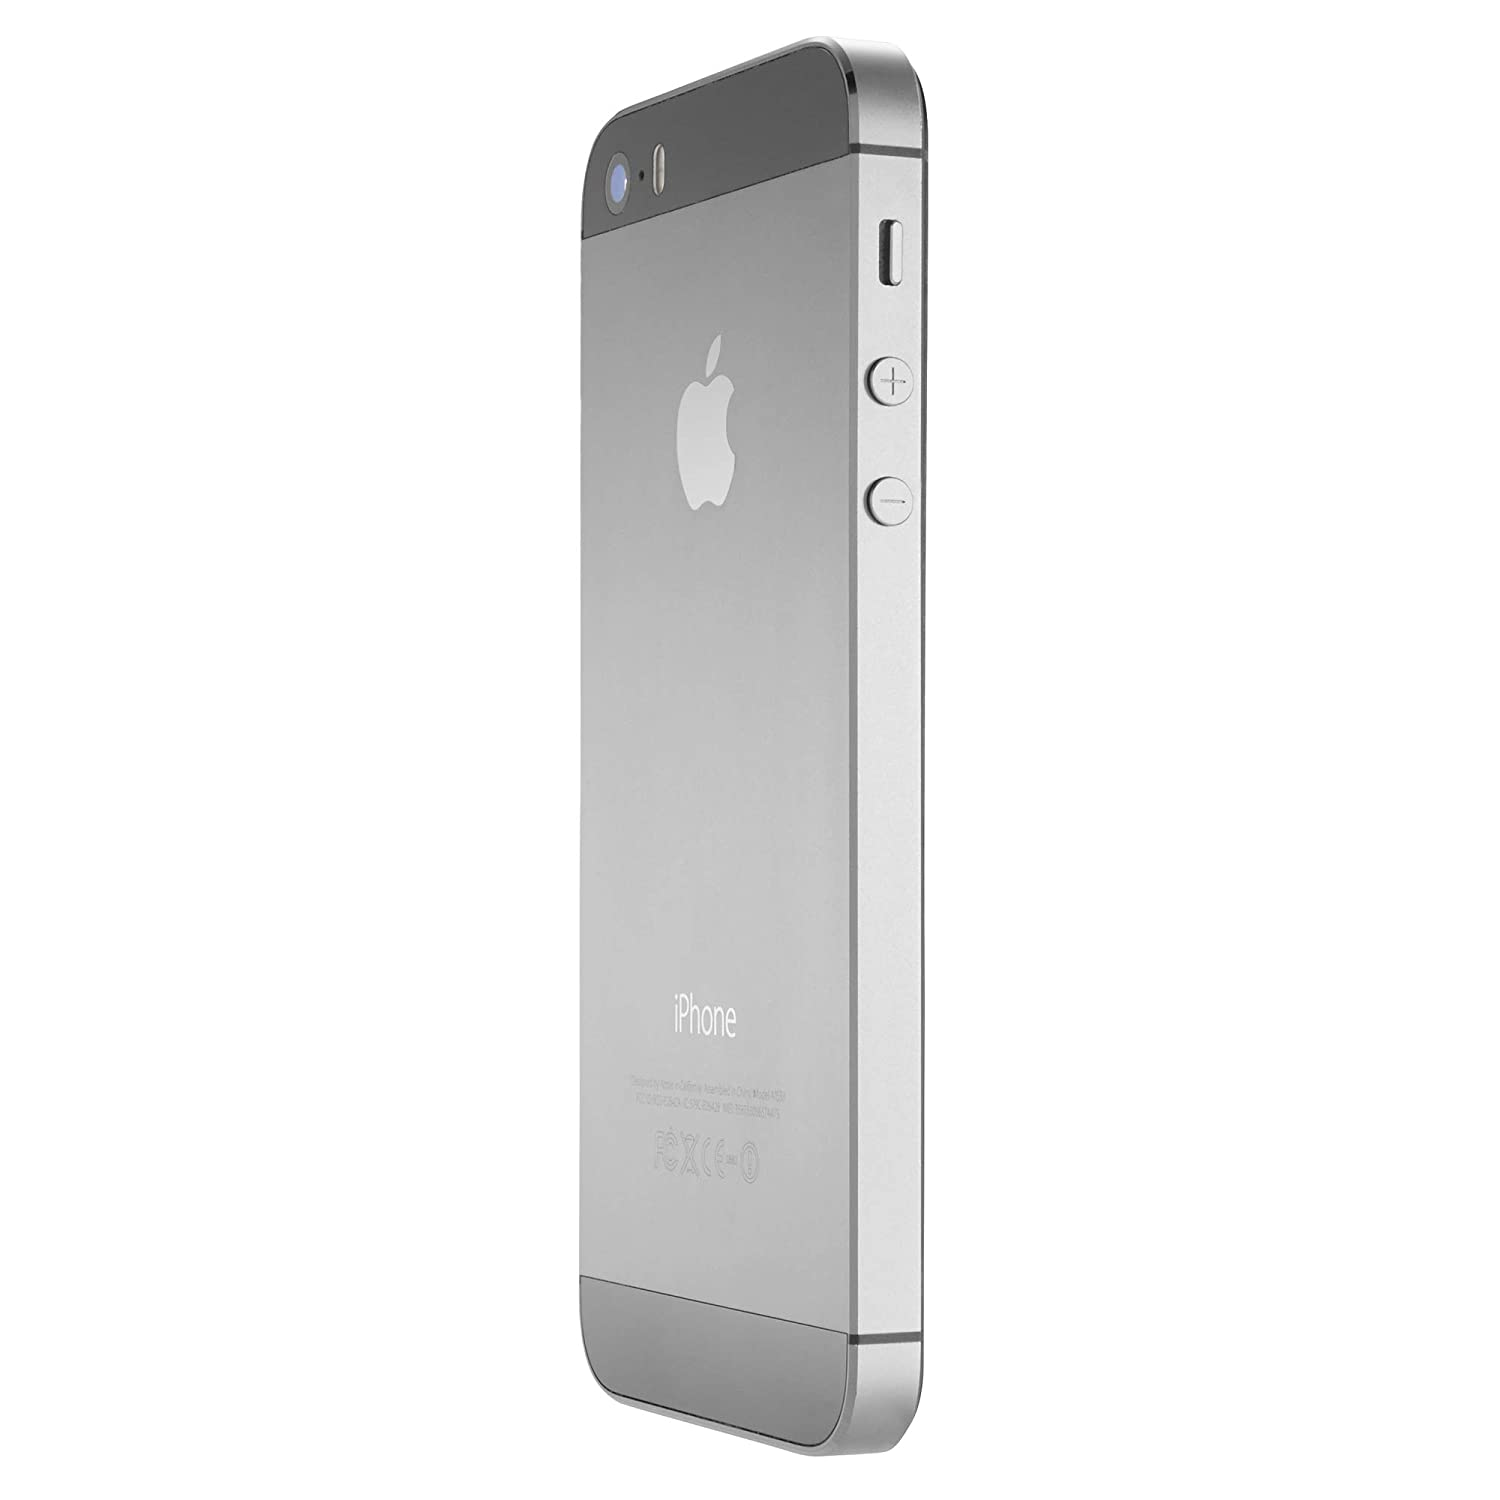 Amazon Apple iPhone 5S 16GB GSM Unlocked Space Gray Refurbished Cell Phones & Accessories